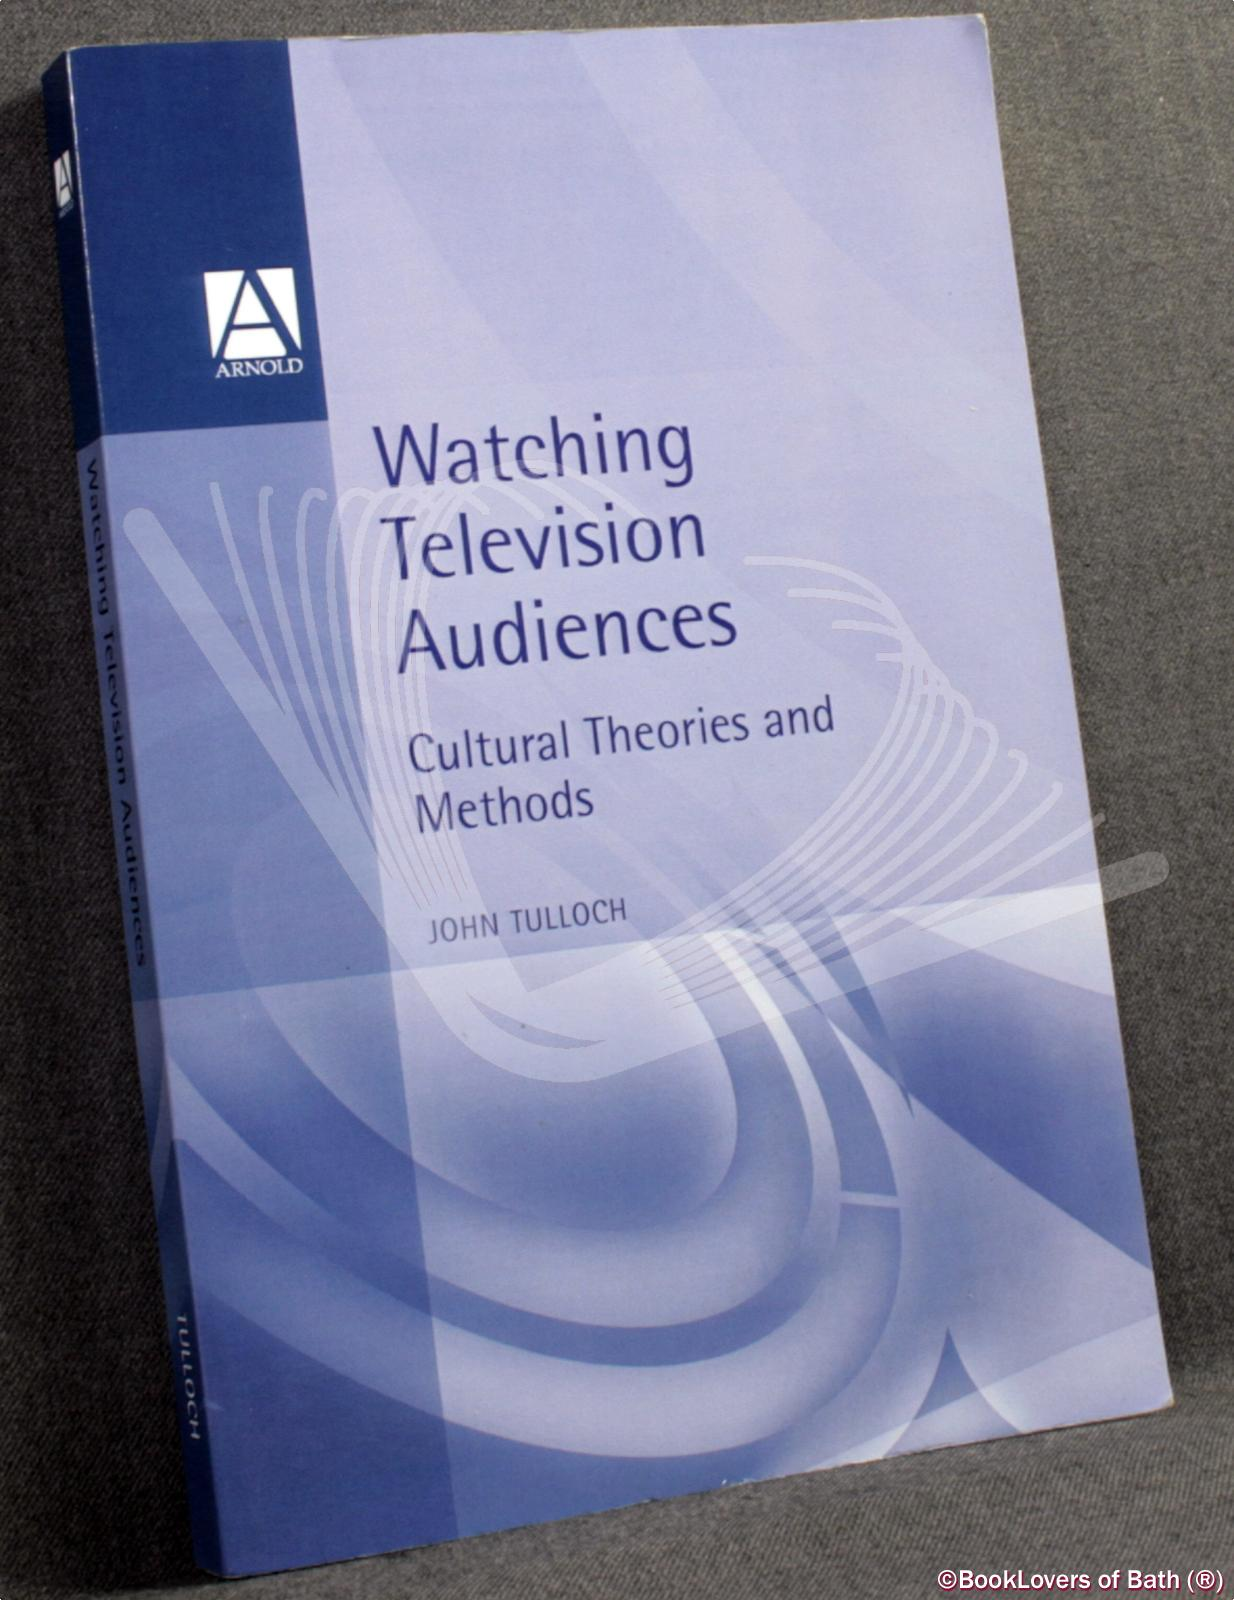 Watching Television Audiences: Cultural Theories and Methods - Tulloch